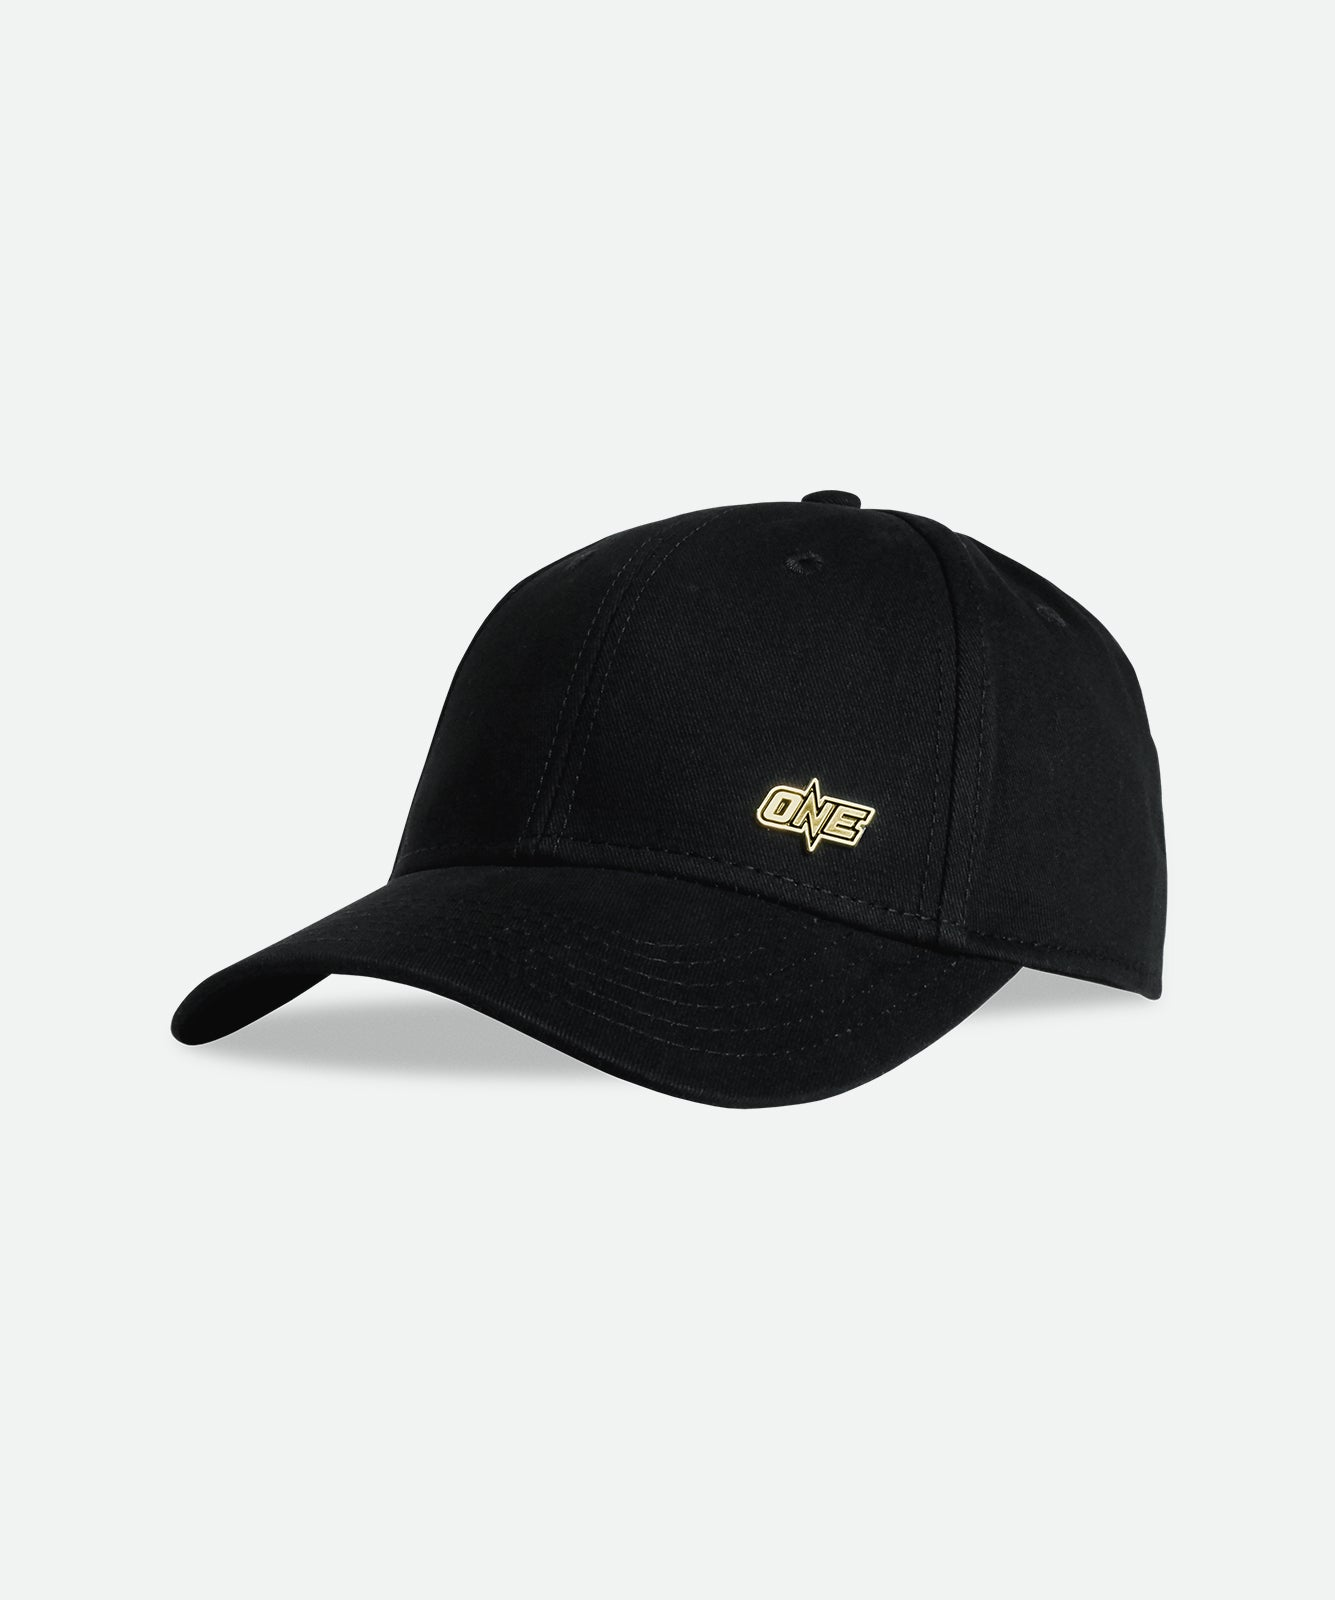 ONE Metal Logo Cap - Black/Gold - ONE.SHOP | The Official Online Shop of ONE Championship